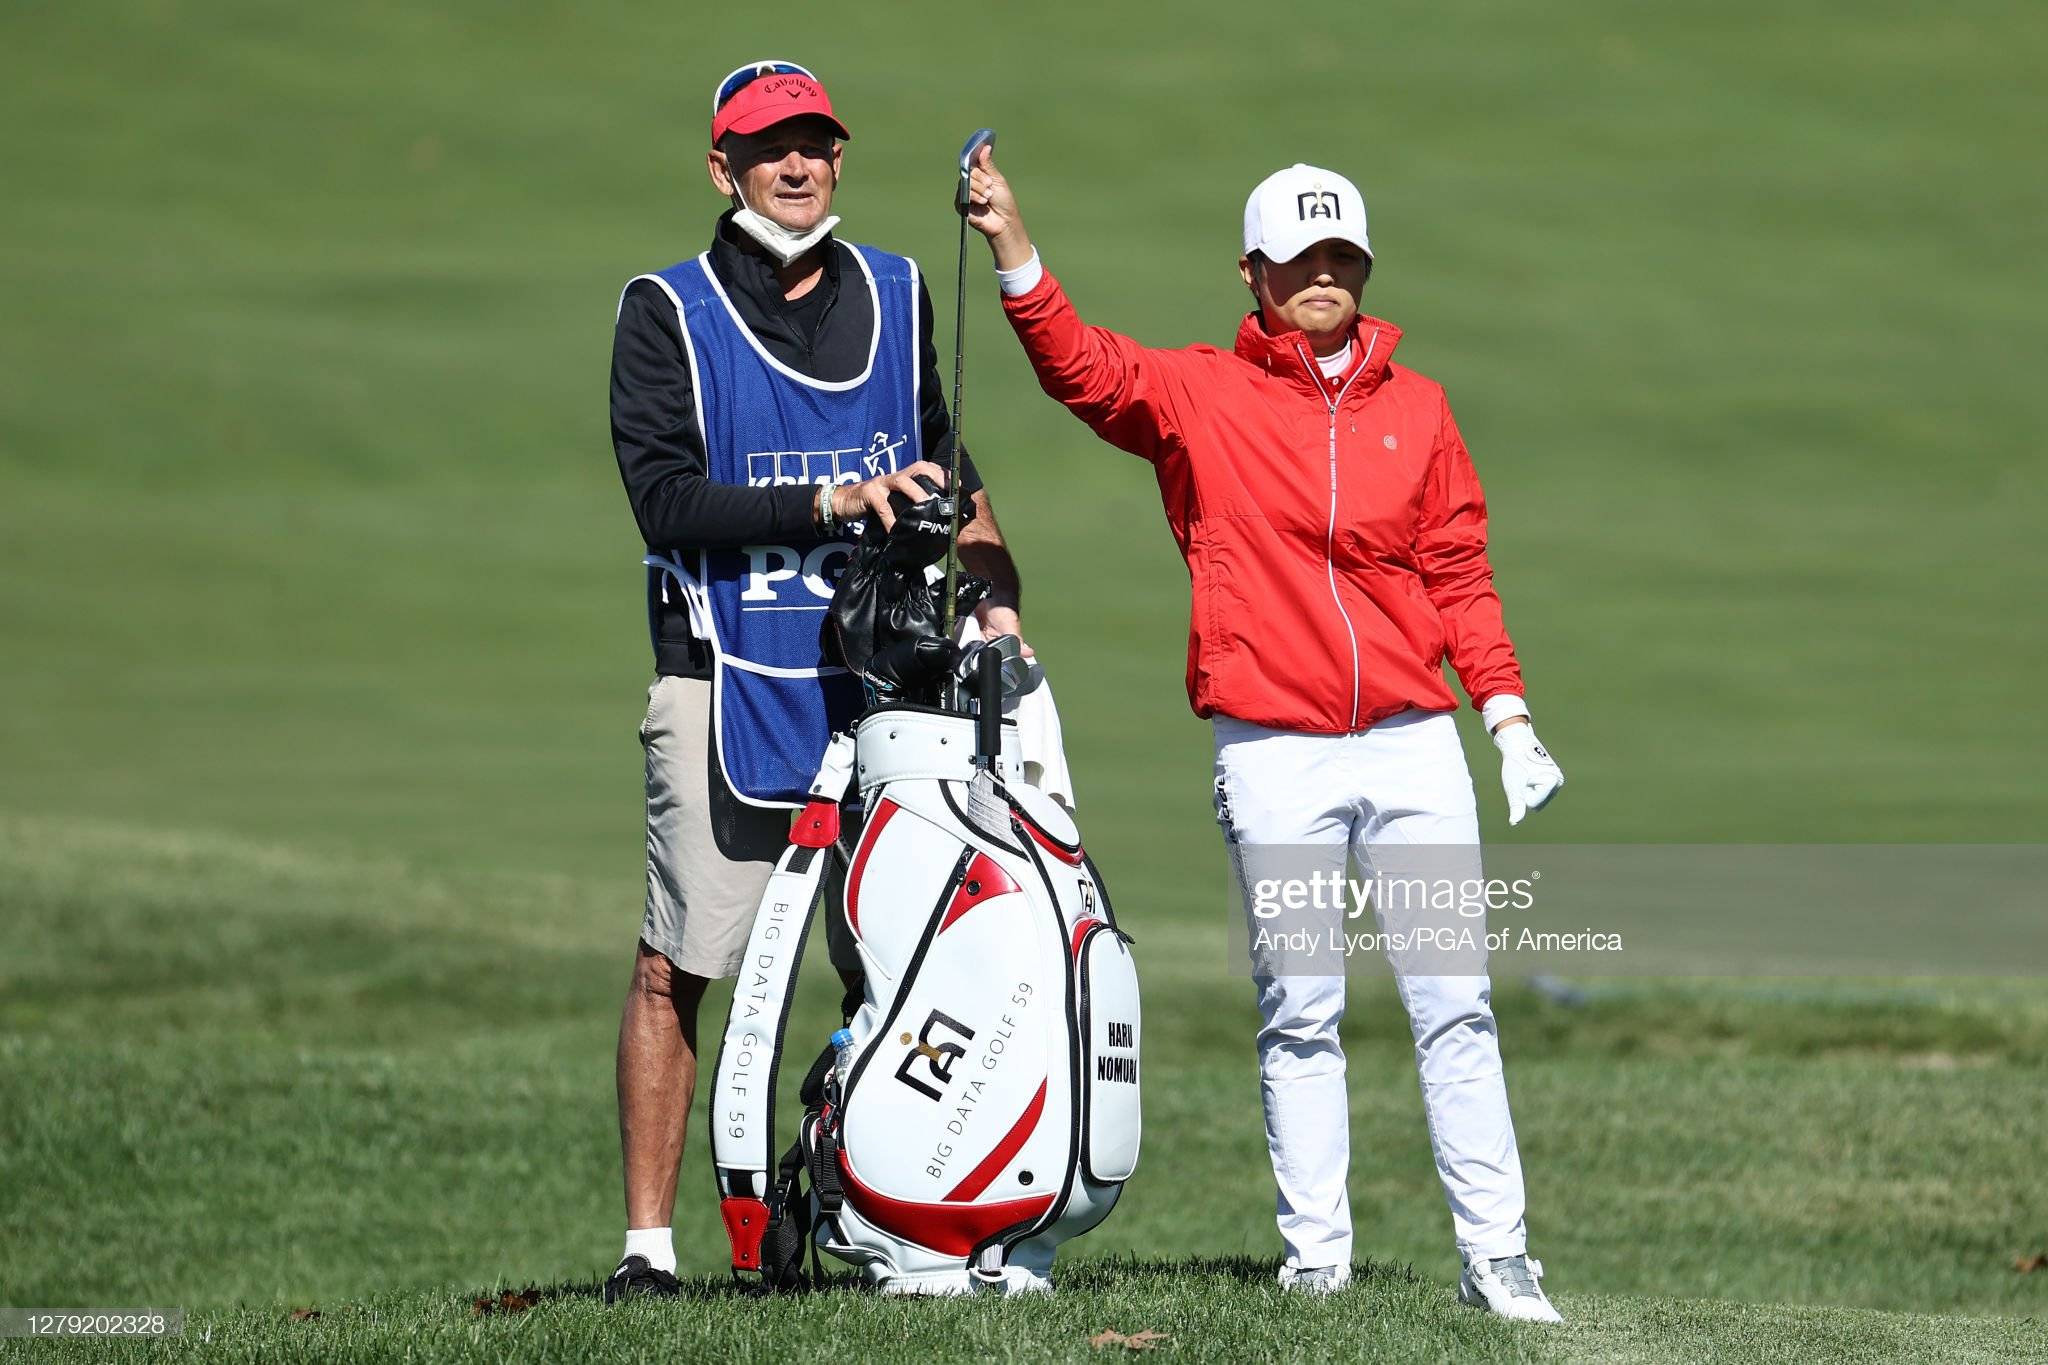 https://media.gettyimages.com/photos/haru-nomura-of-japan-talks-with-her-caddie-on-the-12th-hole-during-picture-id1279202328?s=2048x2048